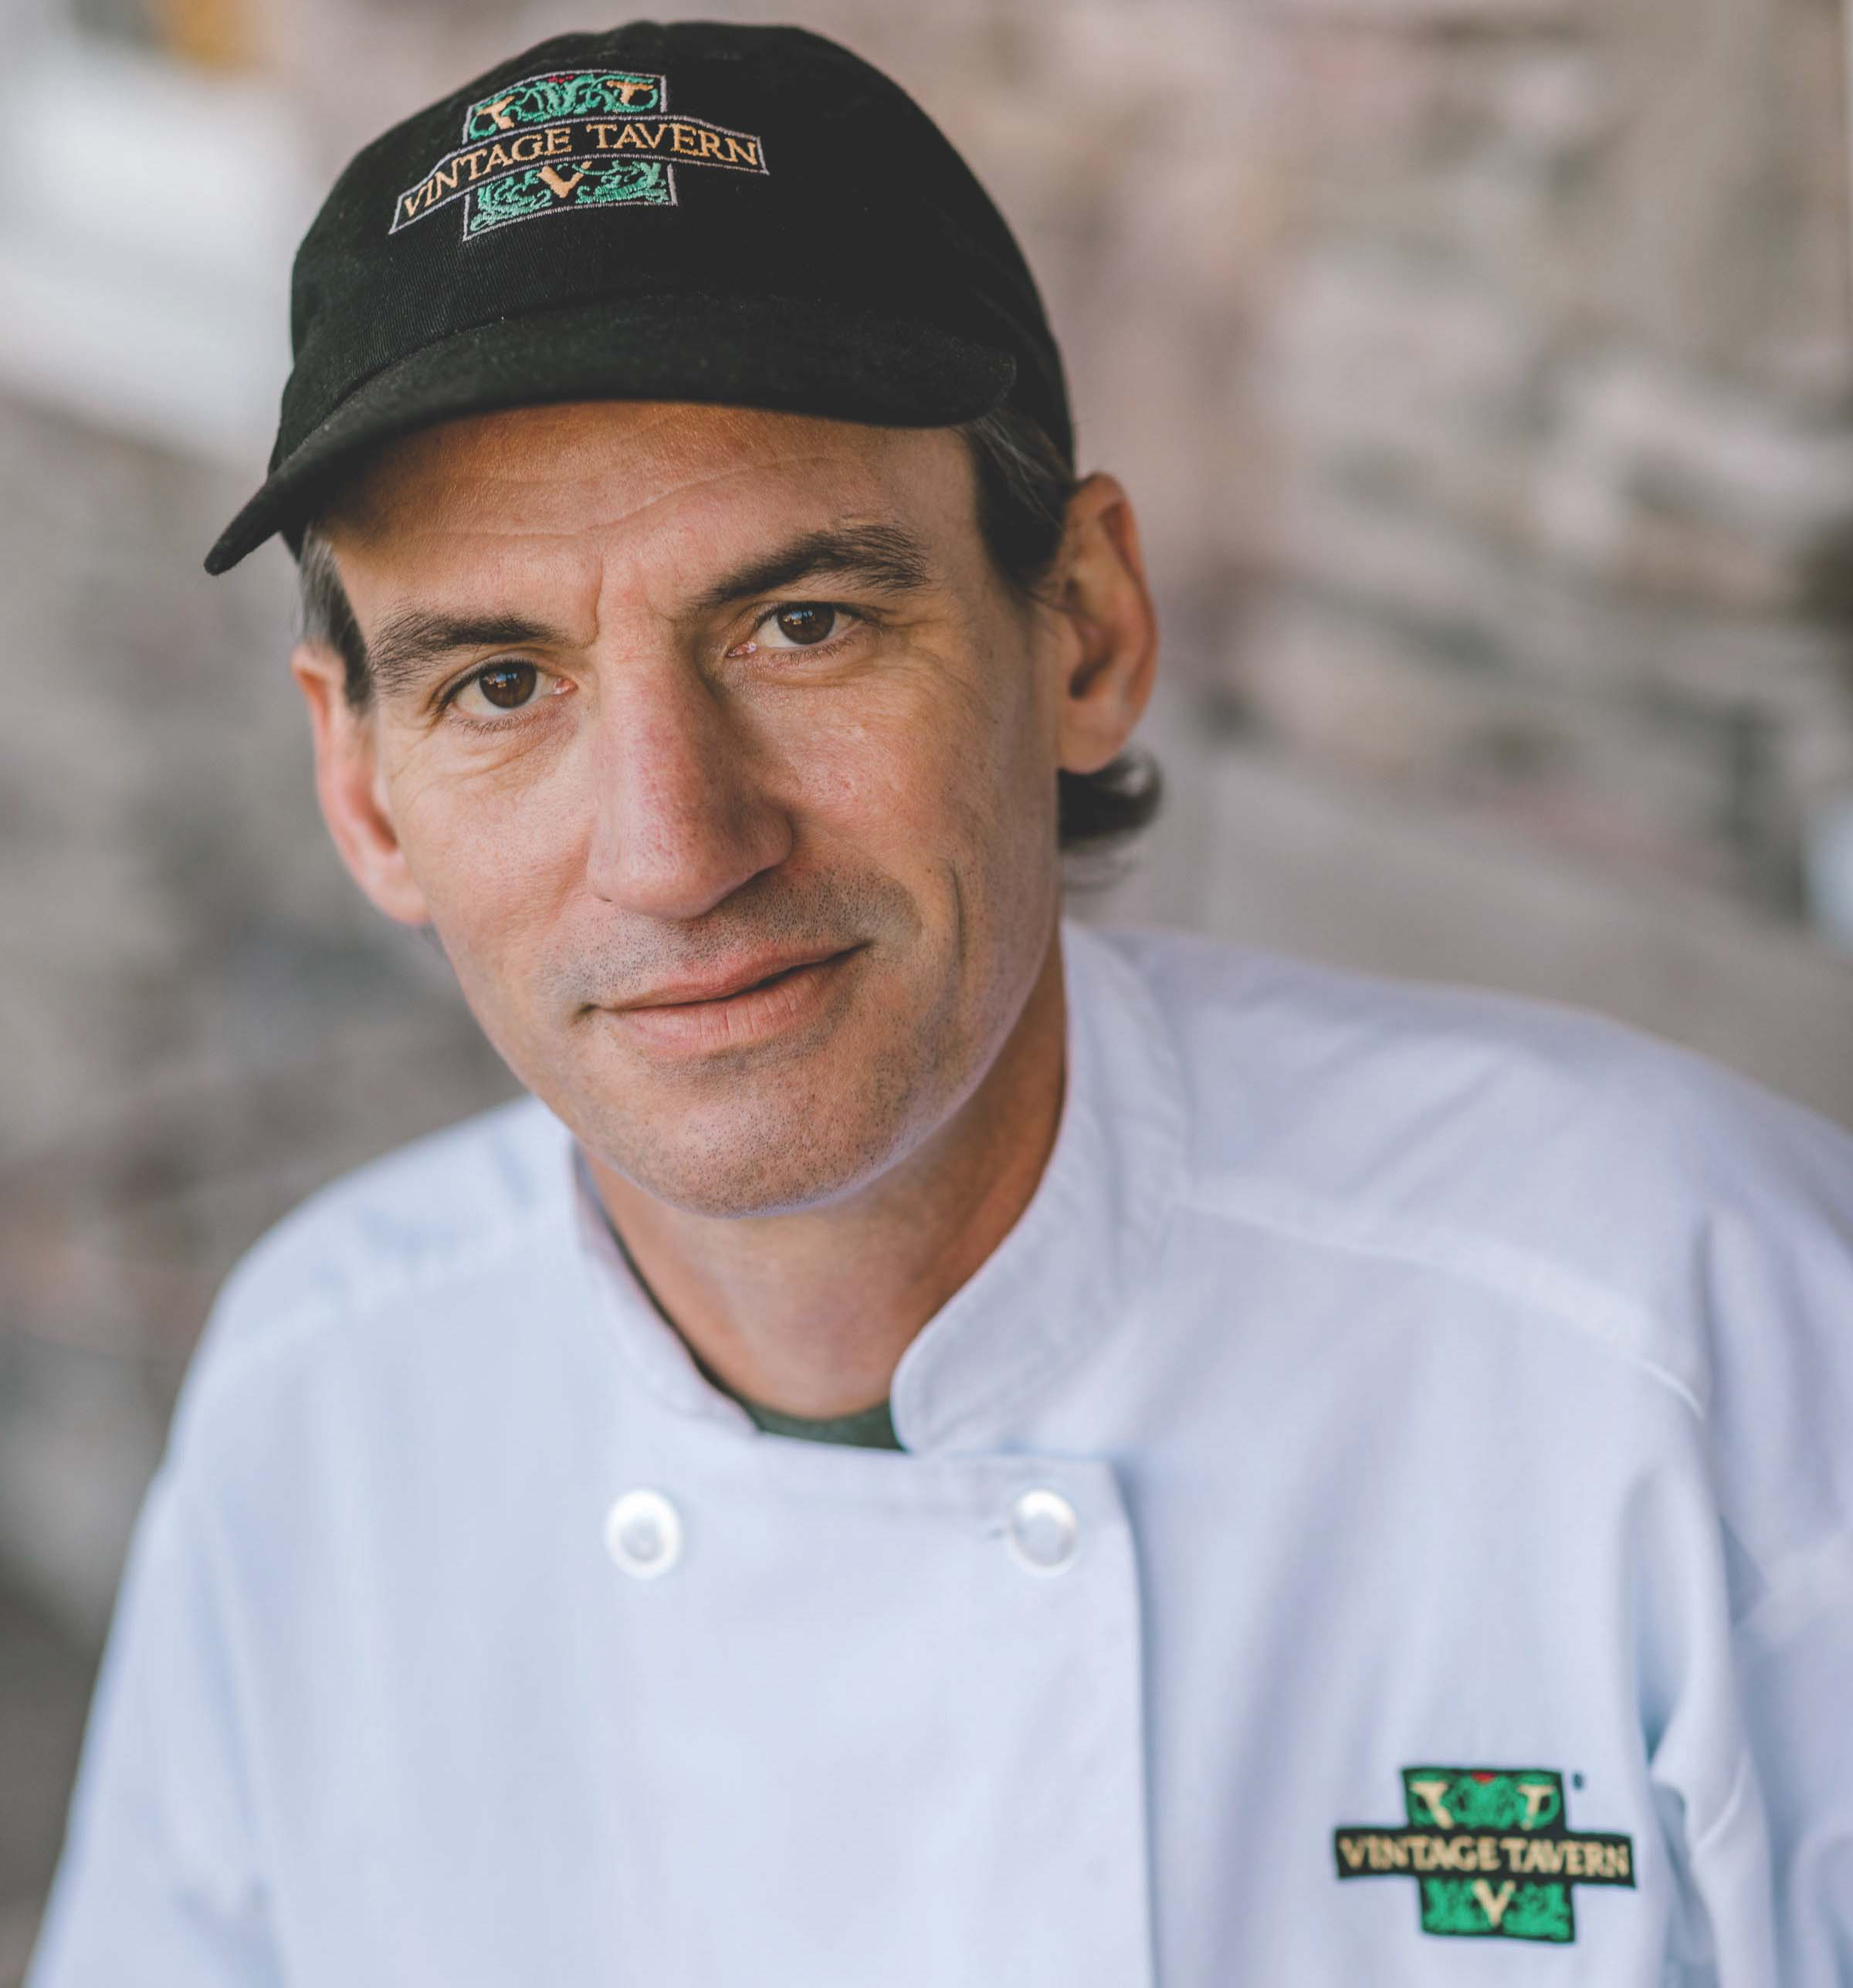 Executive Chef Dave Walters of Vintage Tavern in Suffolk